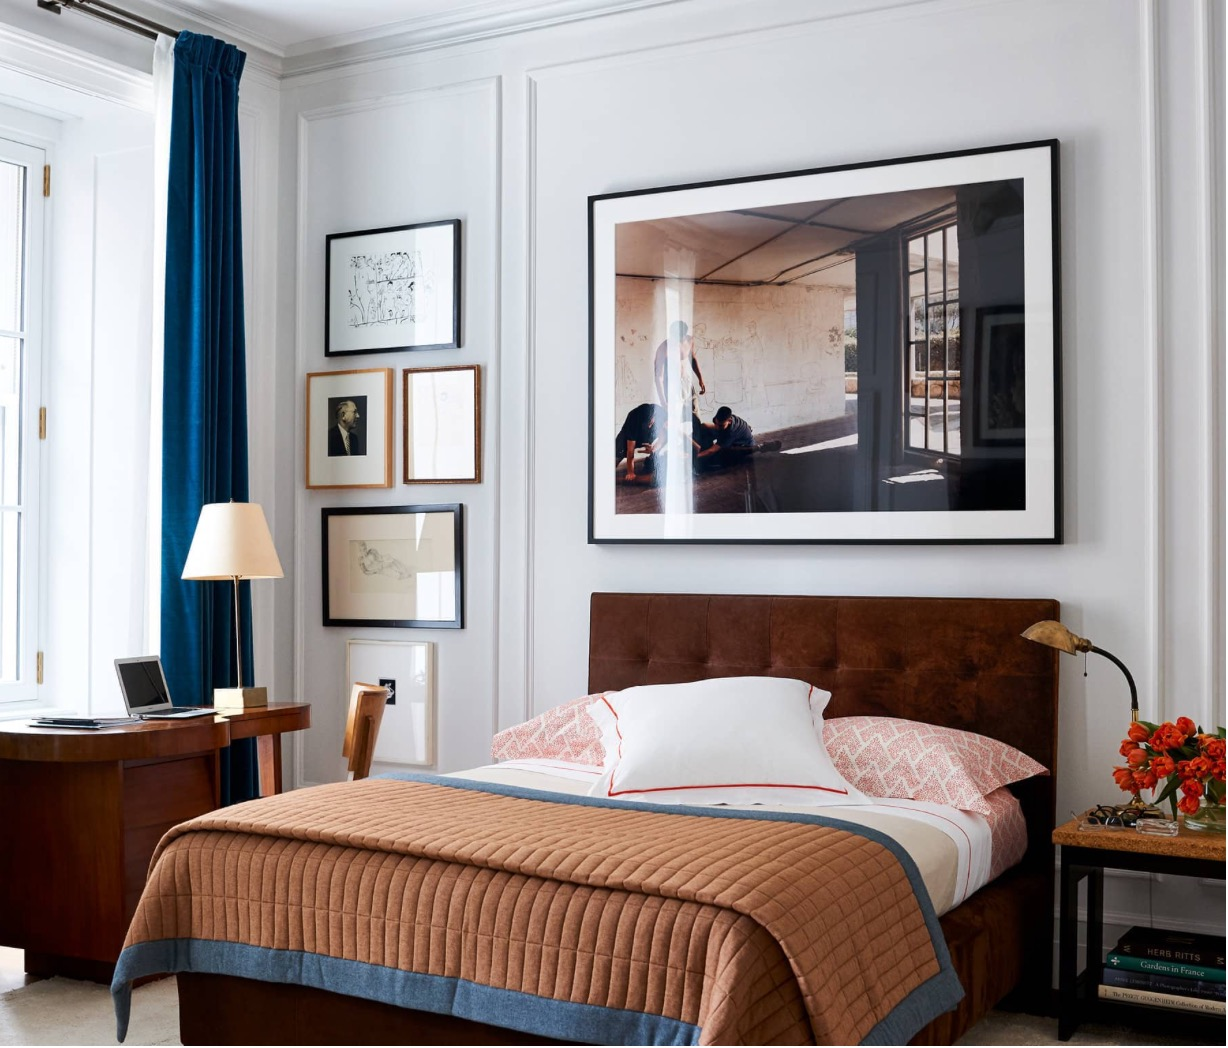 Upper West Side Apartments: An Upper West Side Apartment By Robert Couturier: The